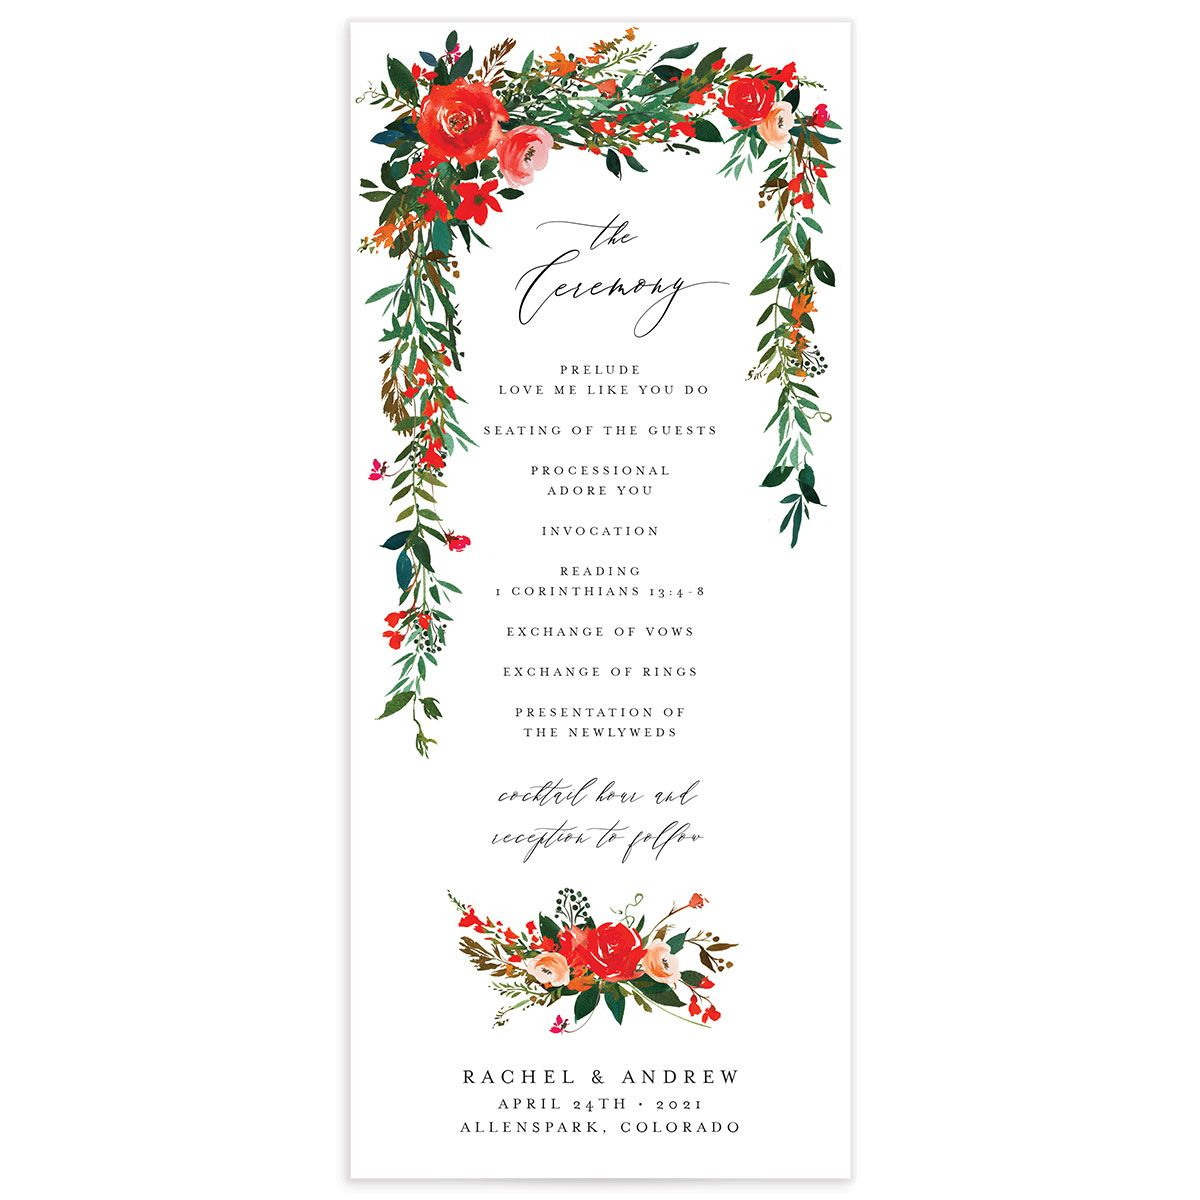 Cascading Altar wedding programs in bright red